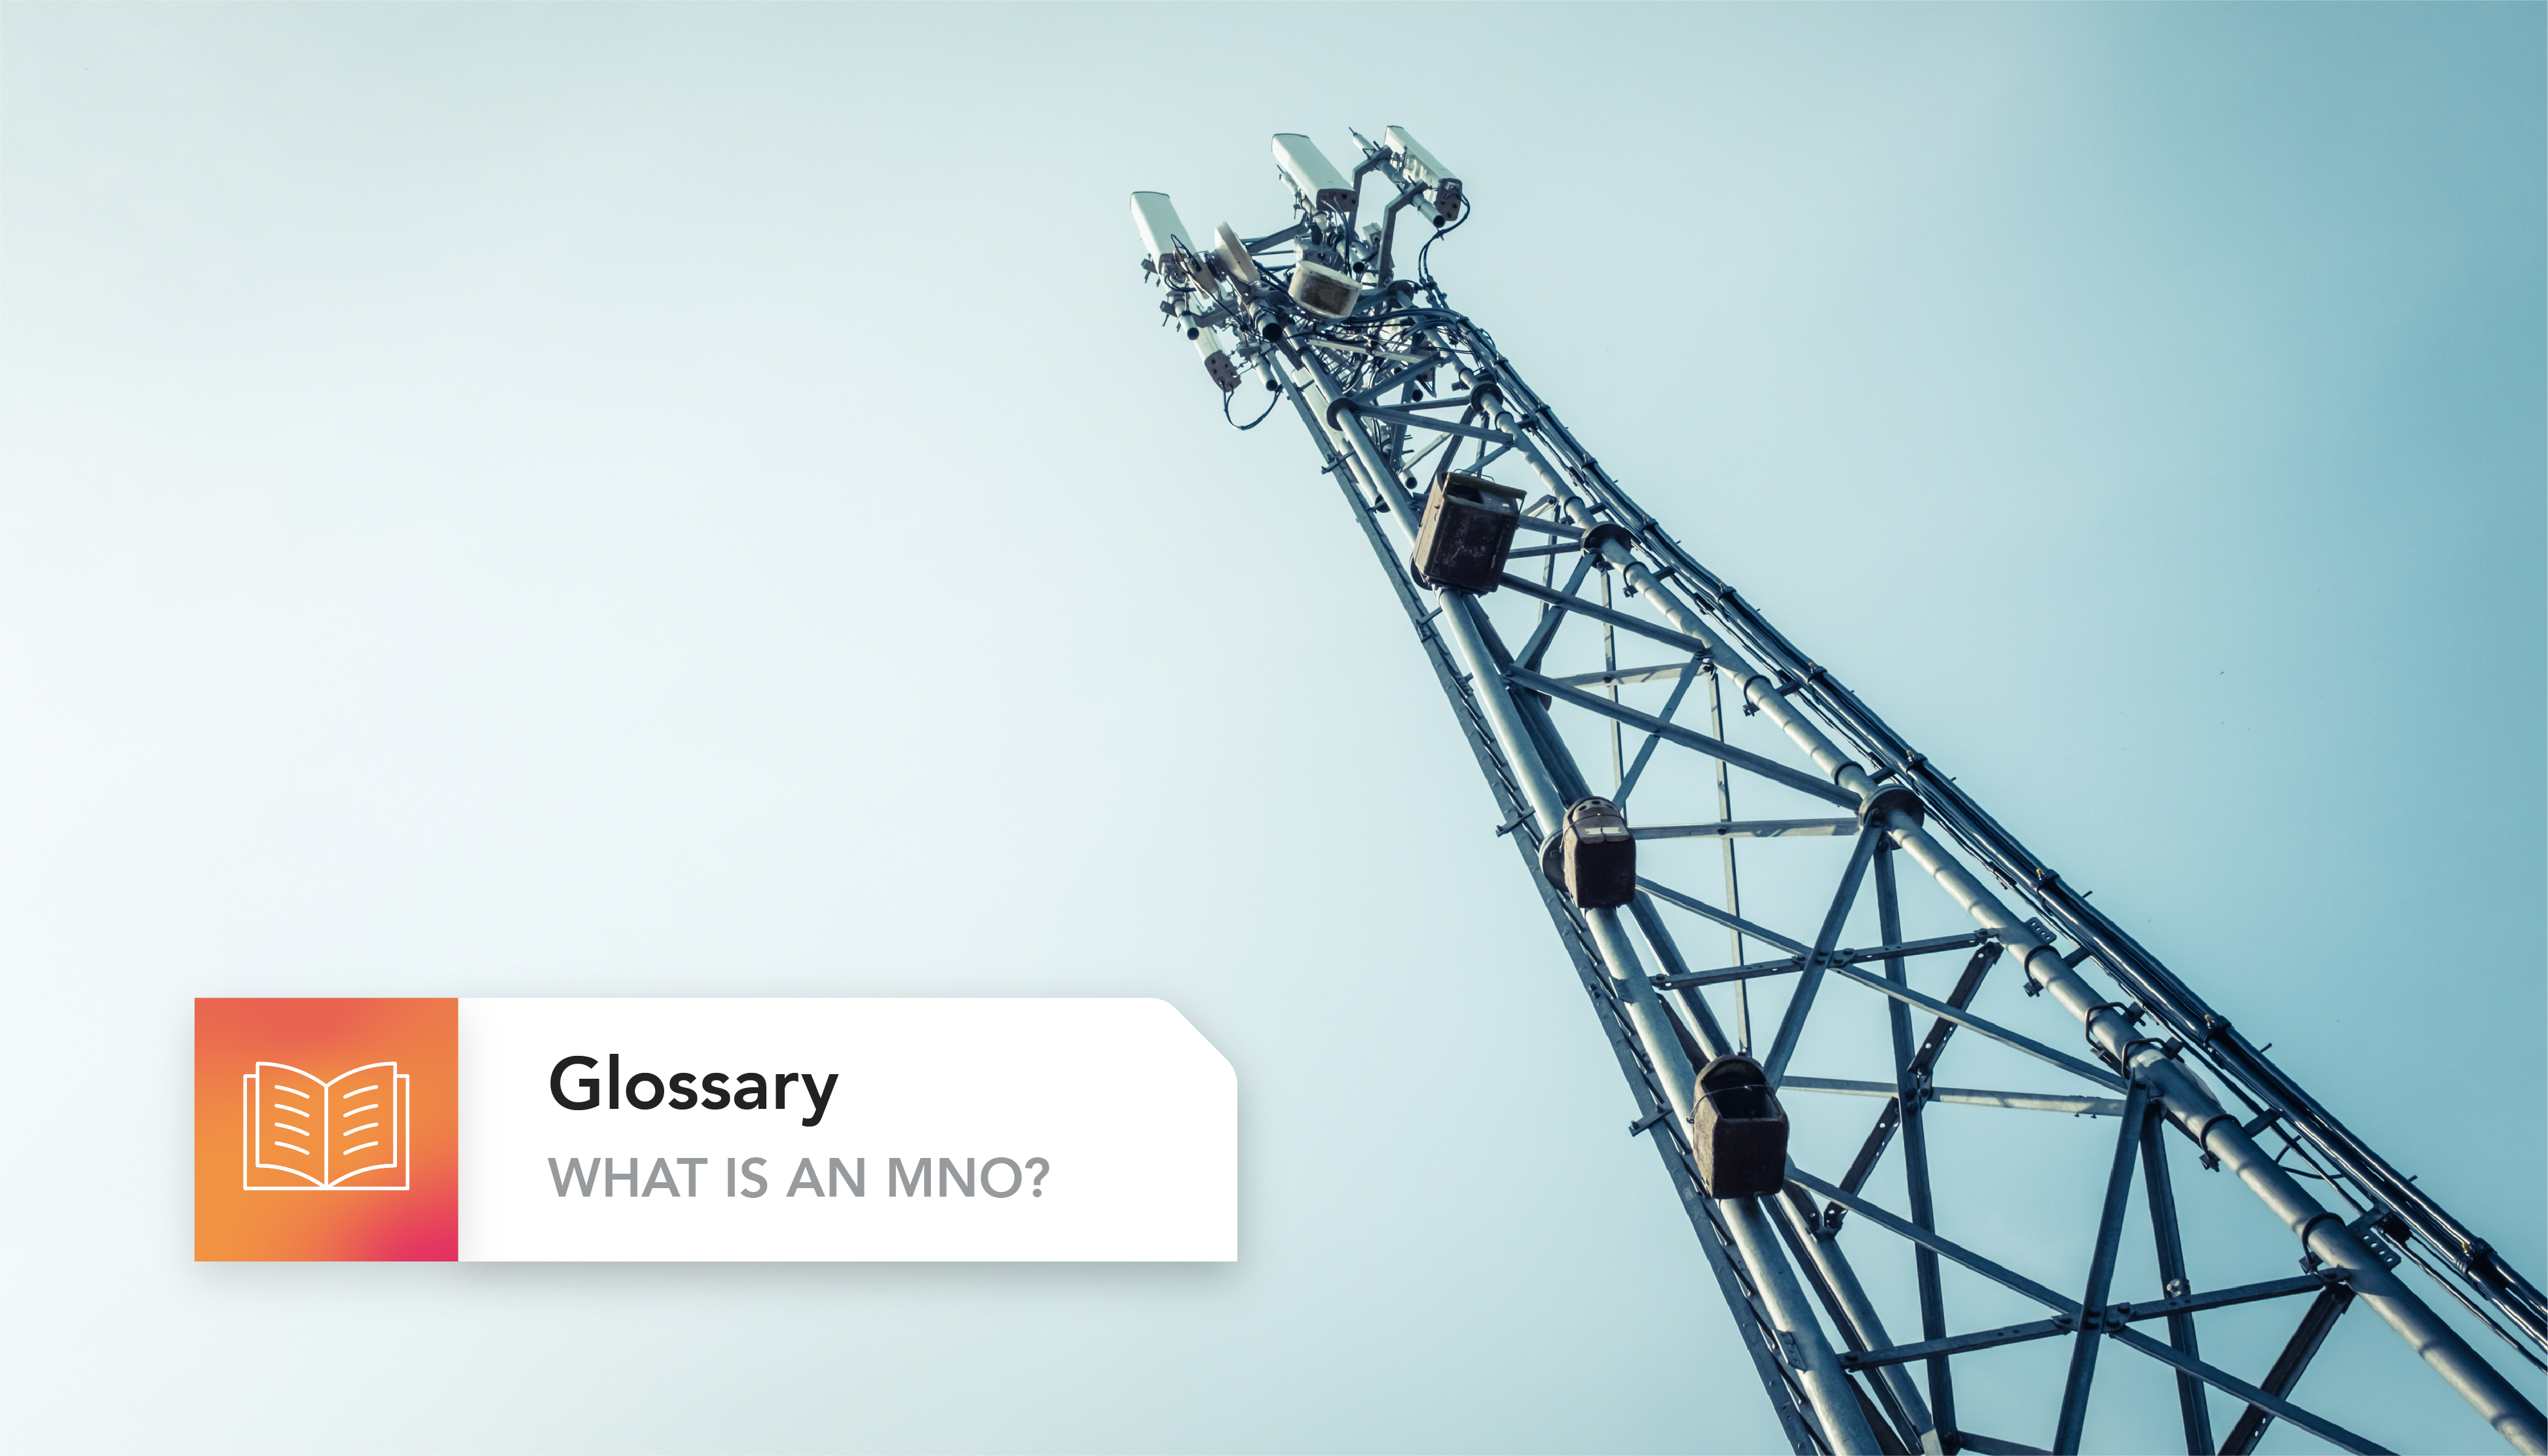 What Is an MNO (Mobile Network Operator)?